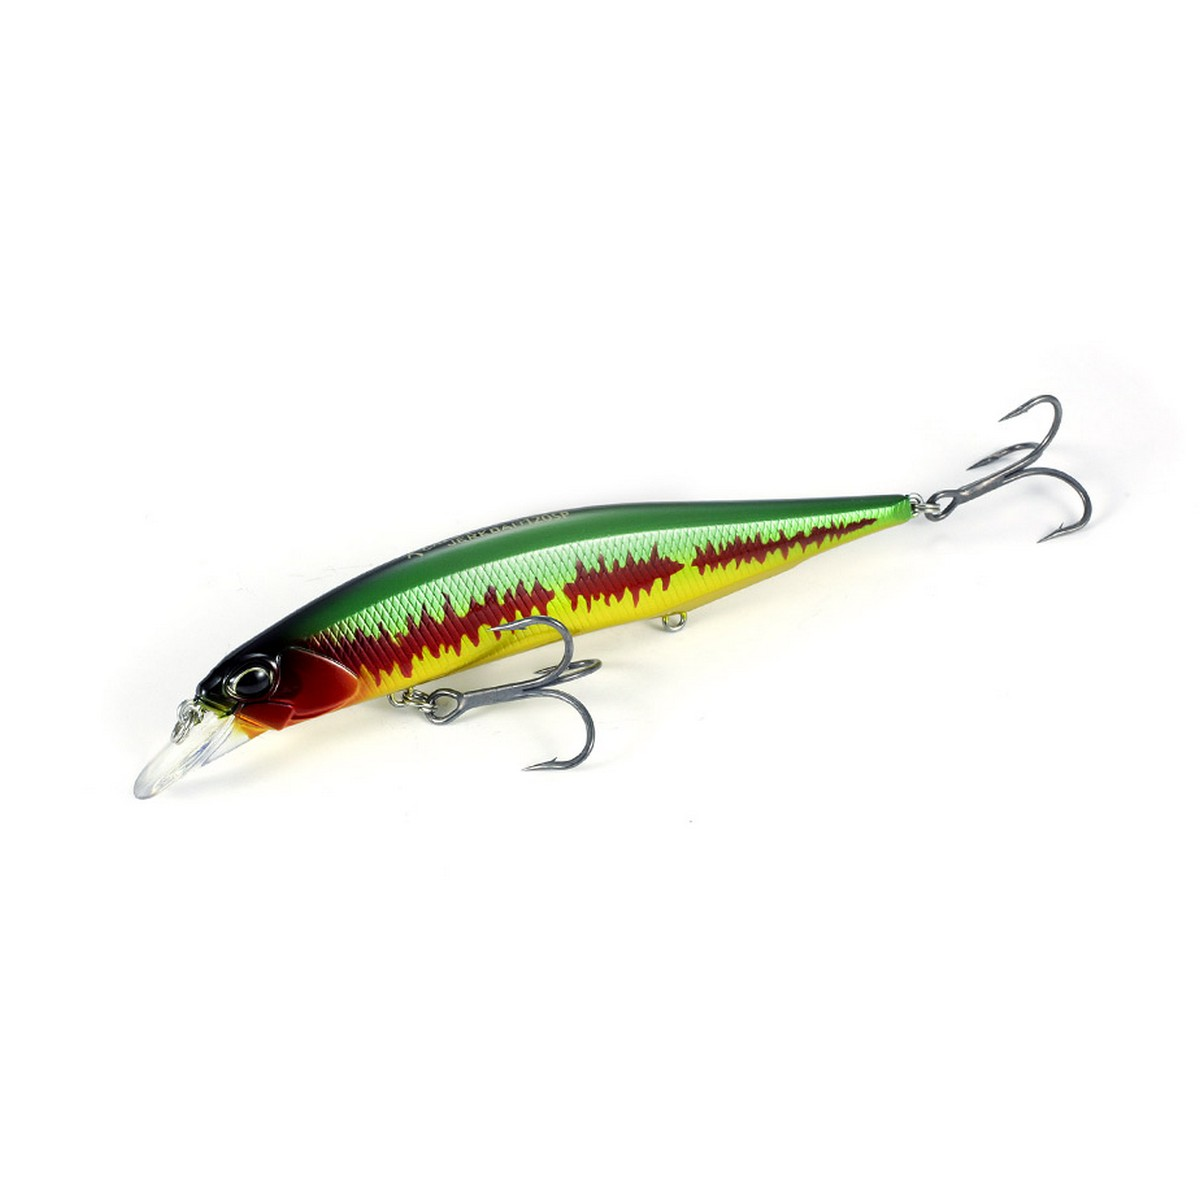 Воблер DUO Realis Jerkbait 120SP Pike Limited